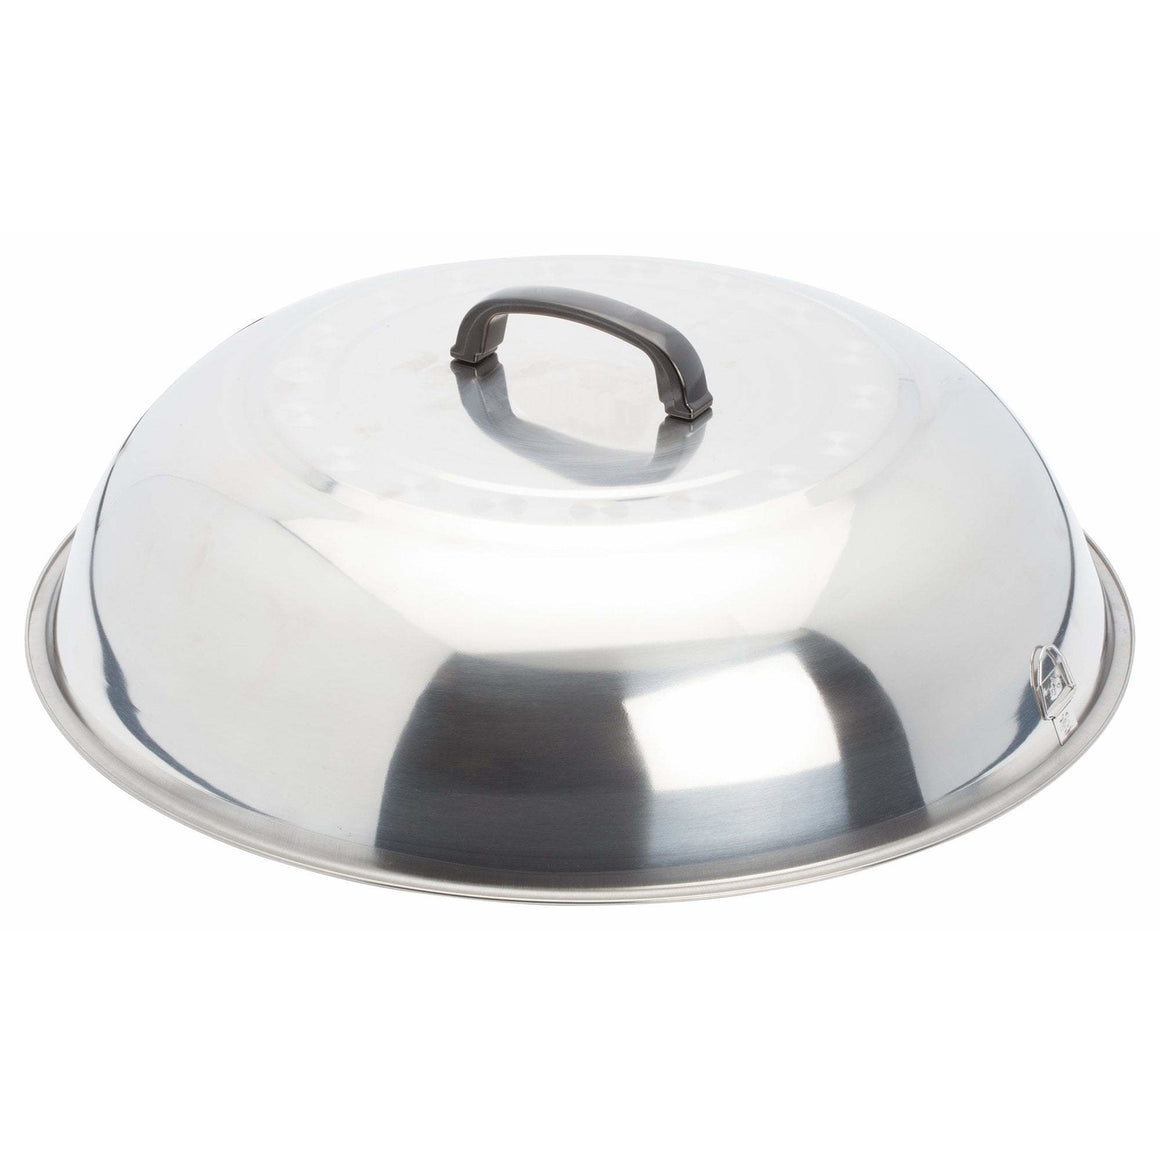 "Winco - WKCS-18 - 17-3/4"" Stainless Steel Wok Cover - Cookware"